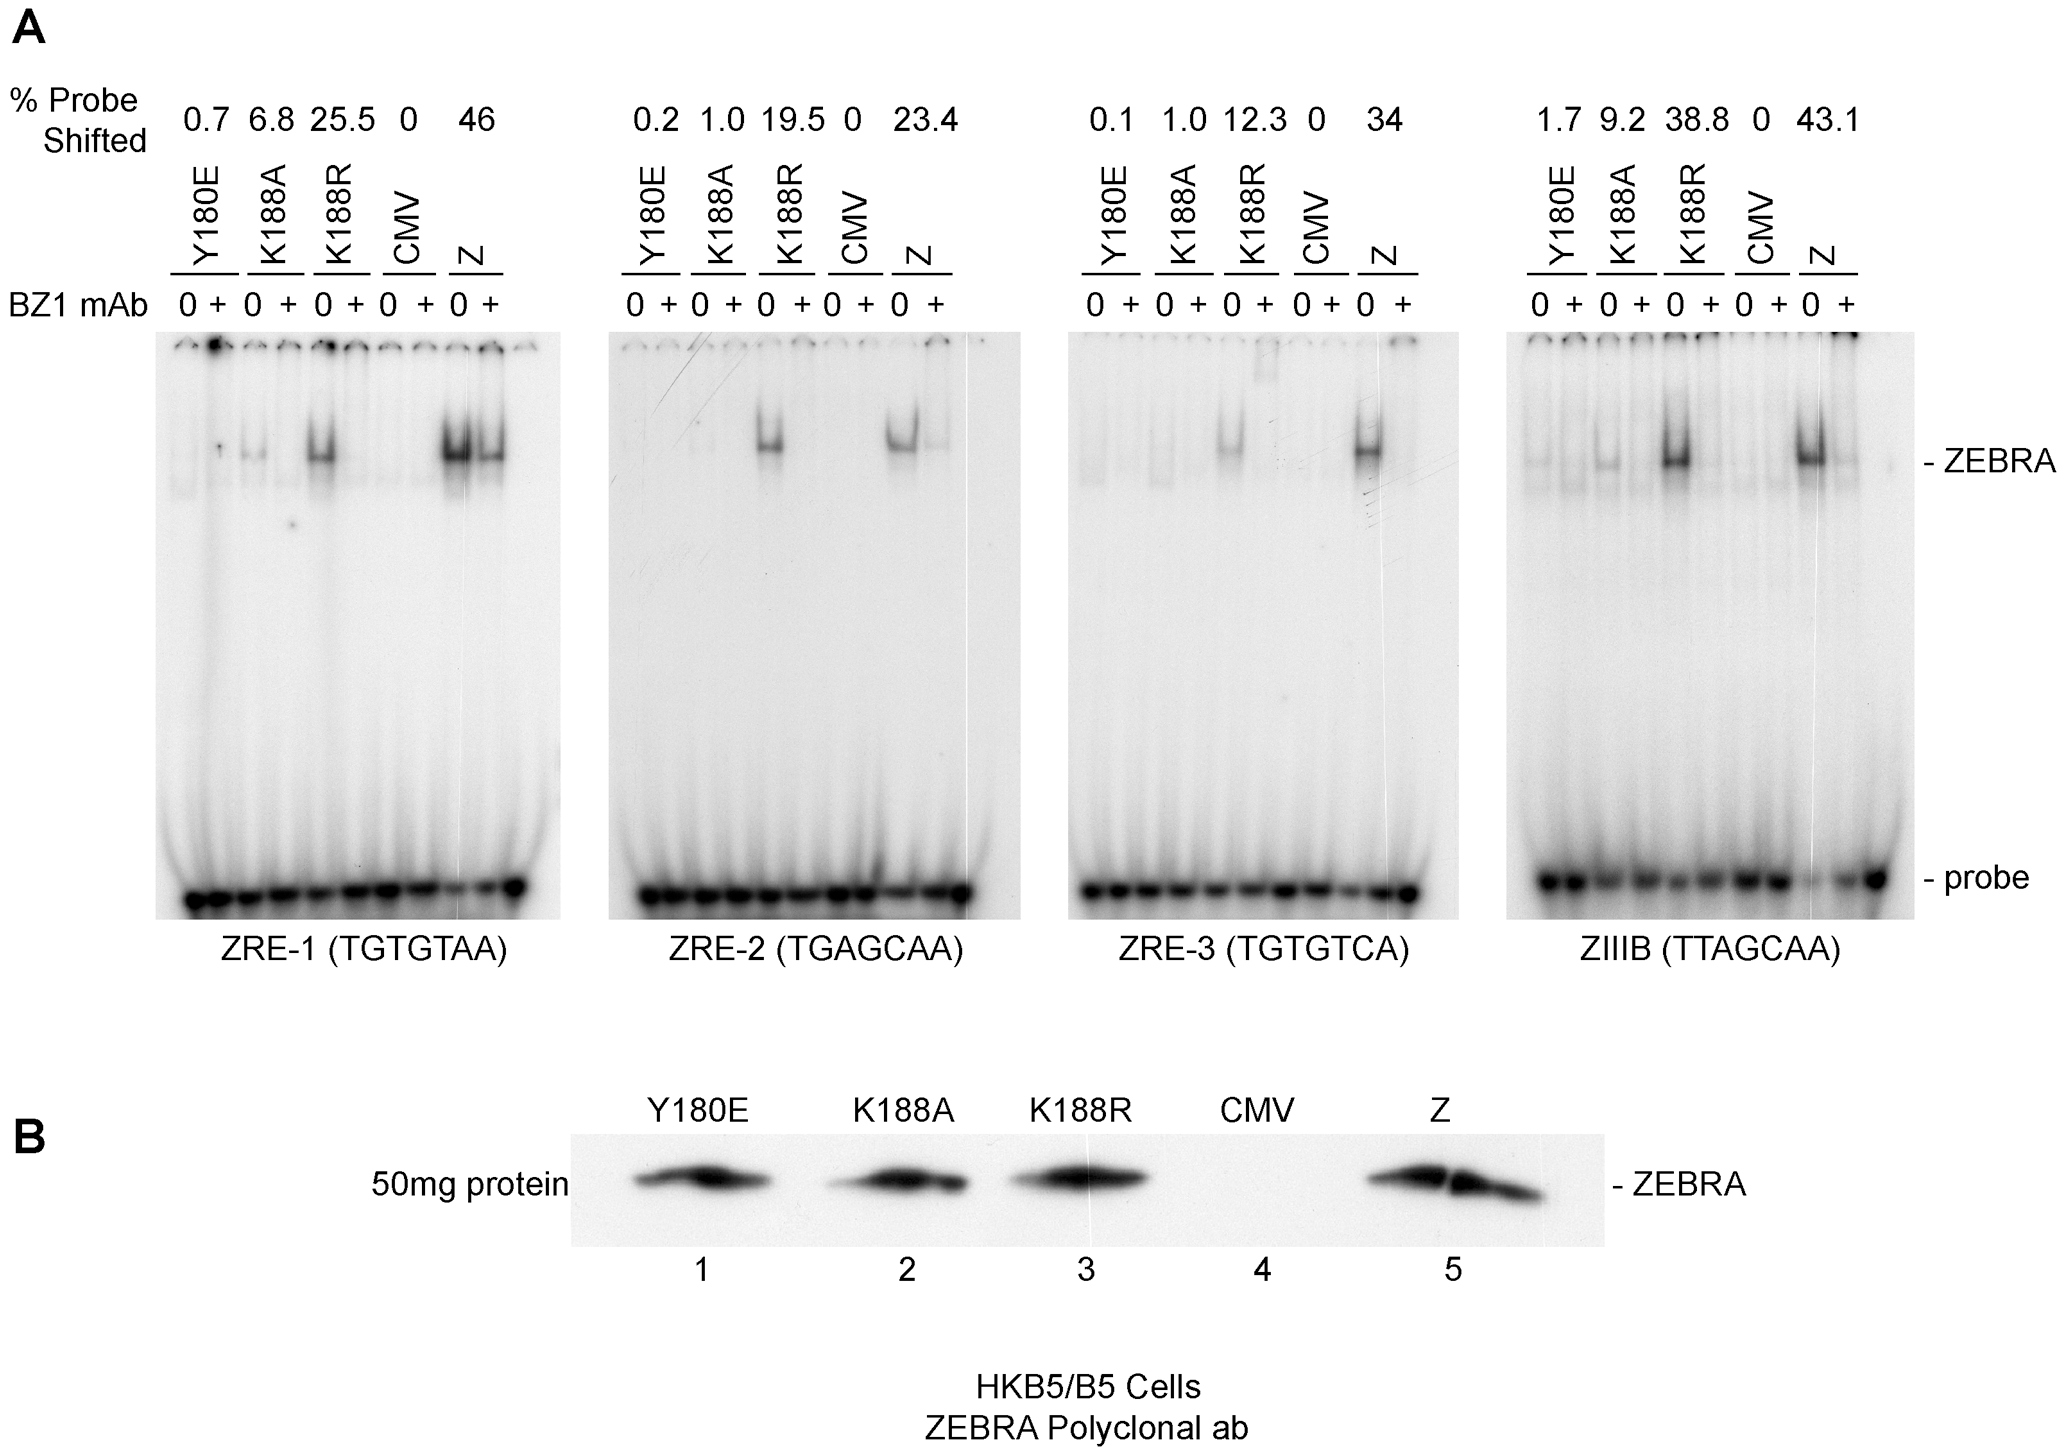 ZEBRA mutants that fail to activate viral replication are defective at binding DNA <i>in vitro</i>.